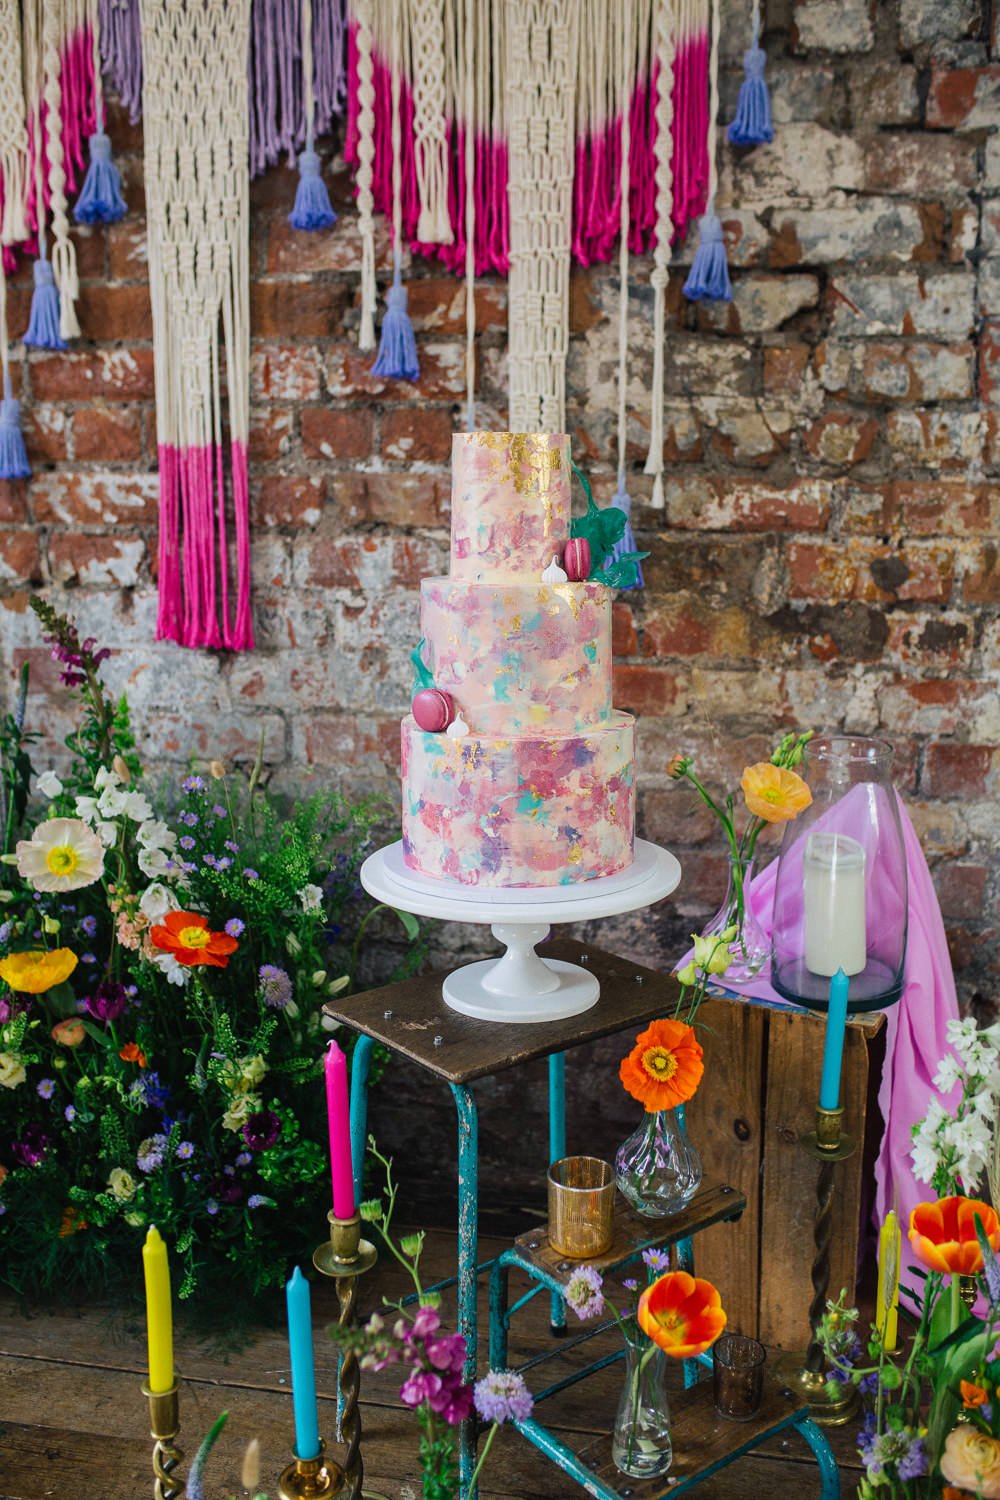 Cake Table Meadow Flowers Macrame Backdrop Candles Playful Cool Wedding Ideas Sophie Lake Photography